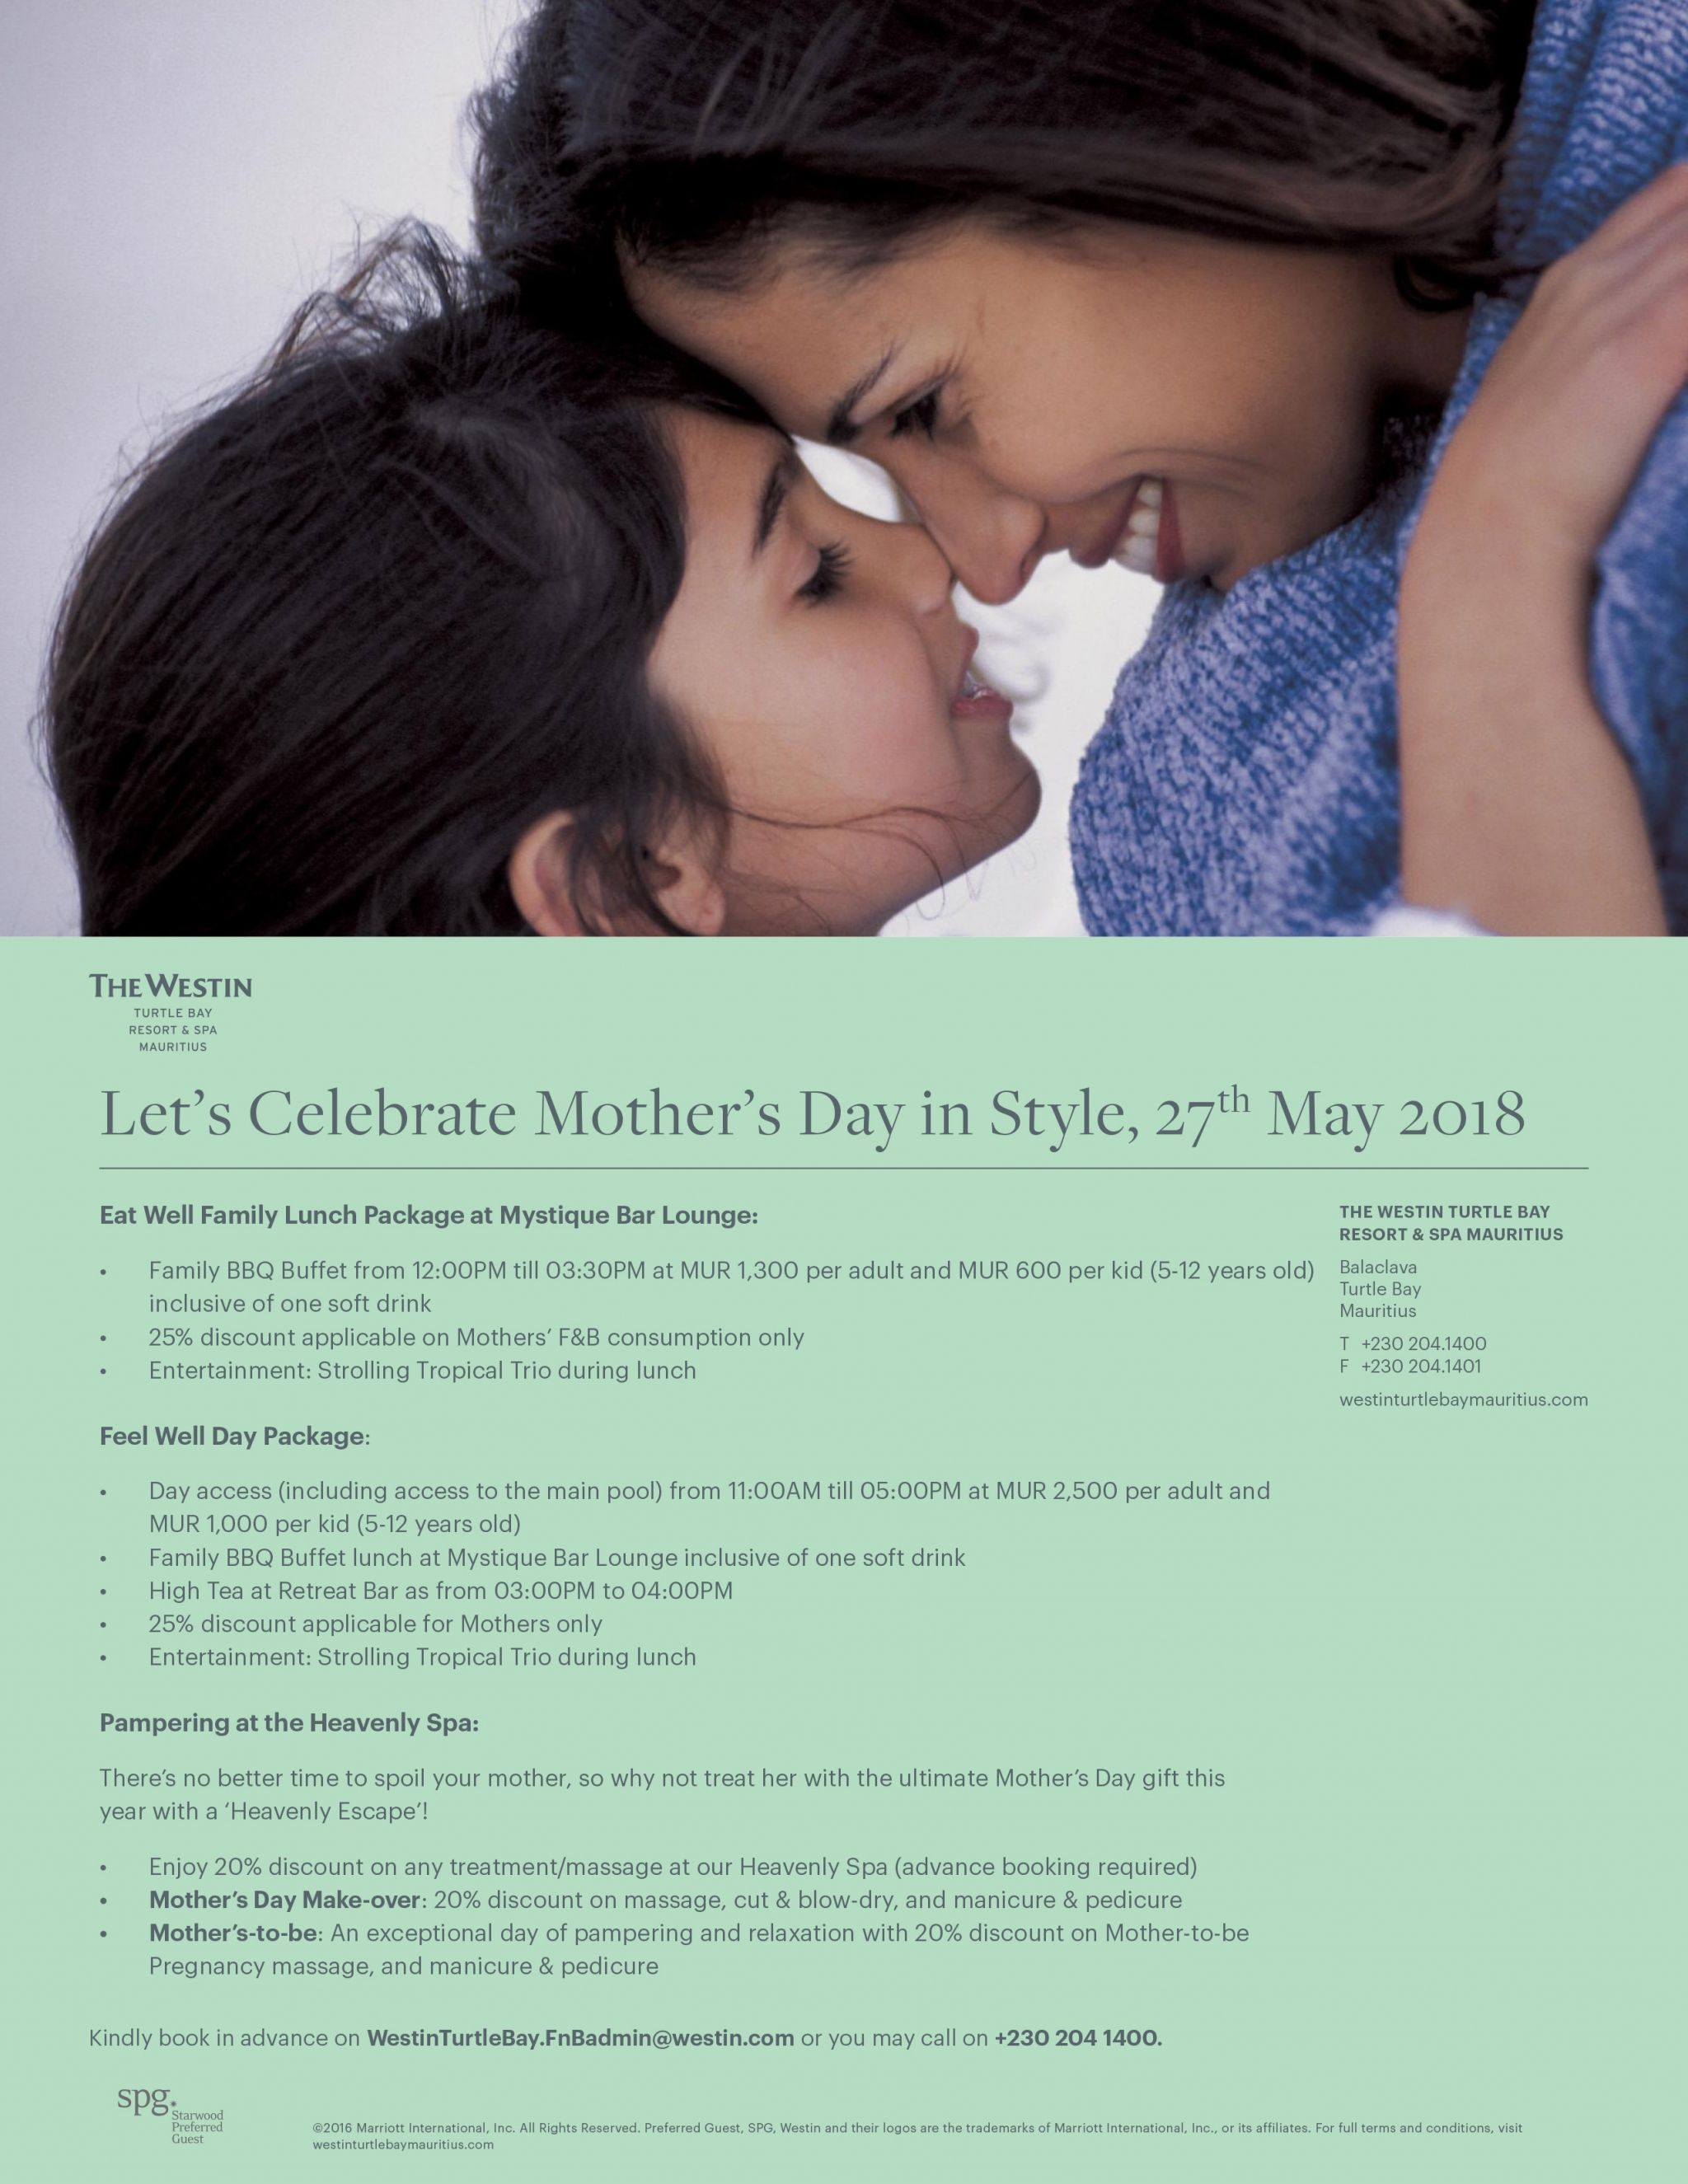 Westin Turtle Bay Resort & Spa Mothers Day offer 2018 flyer